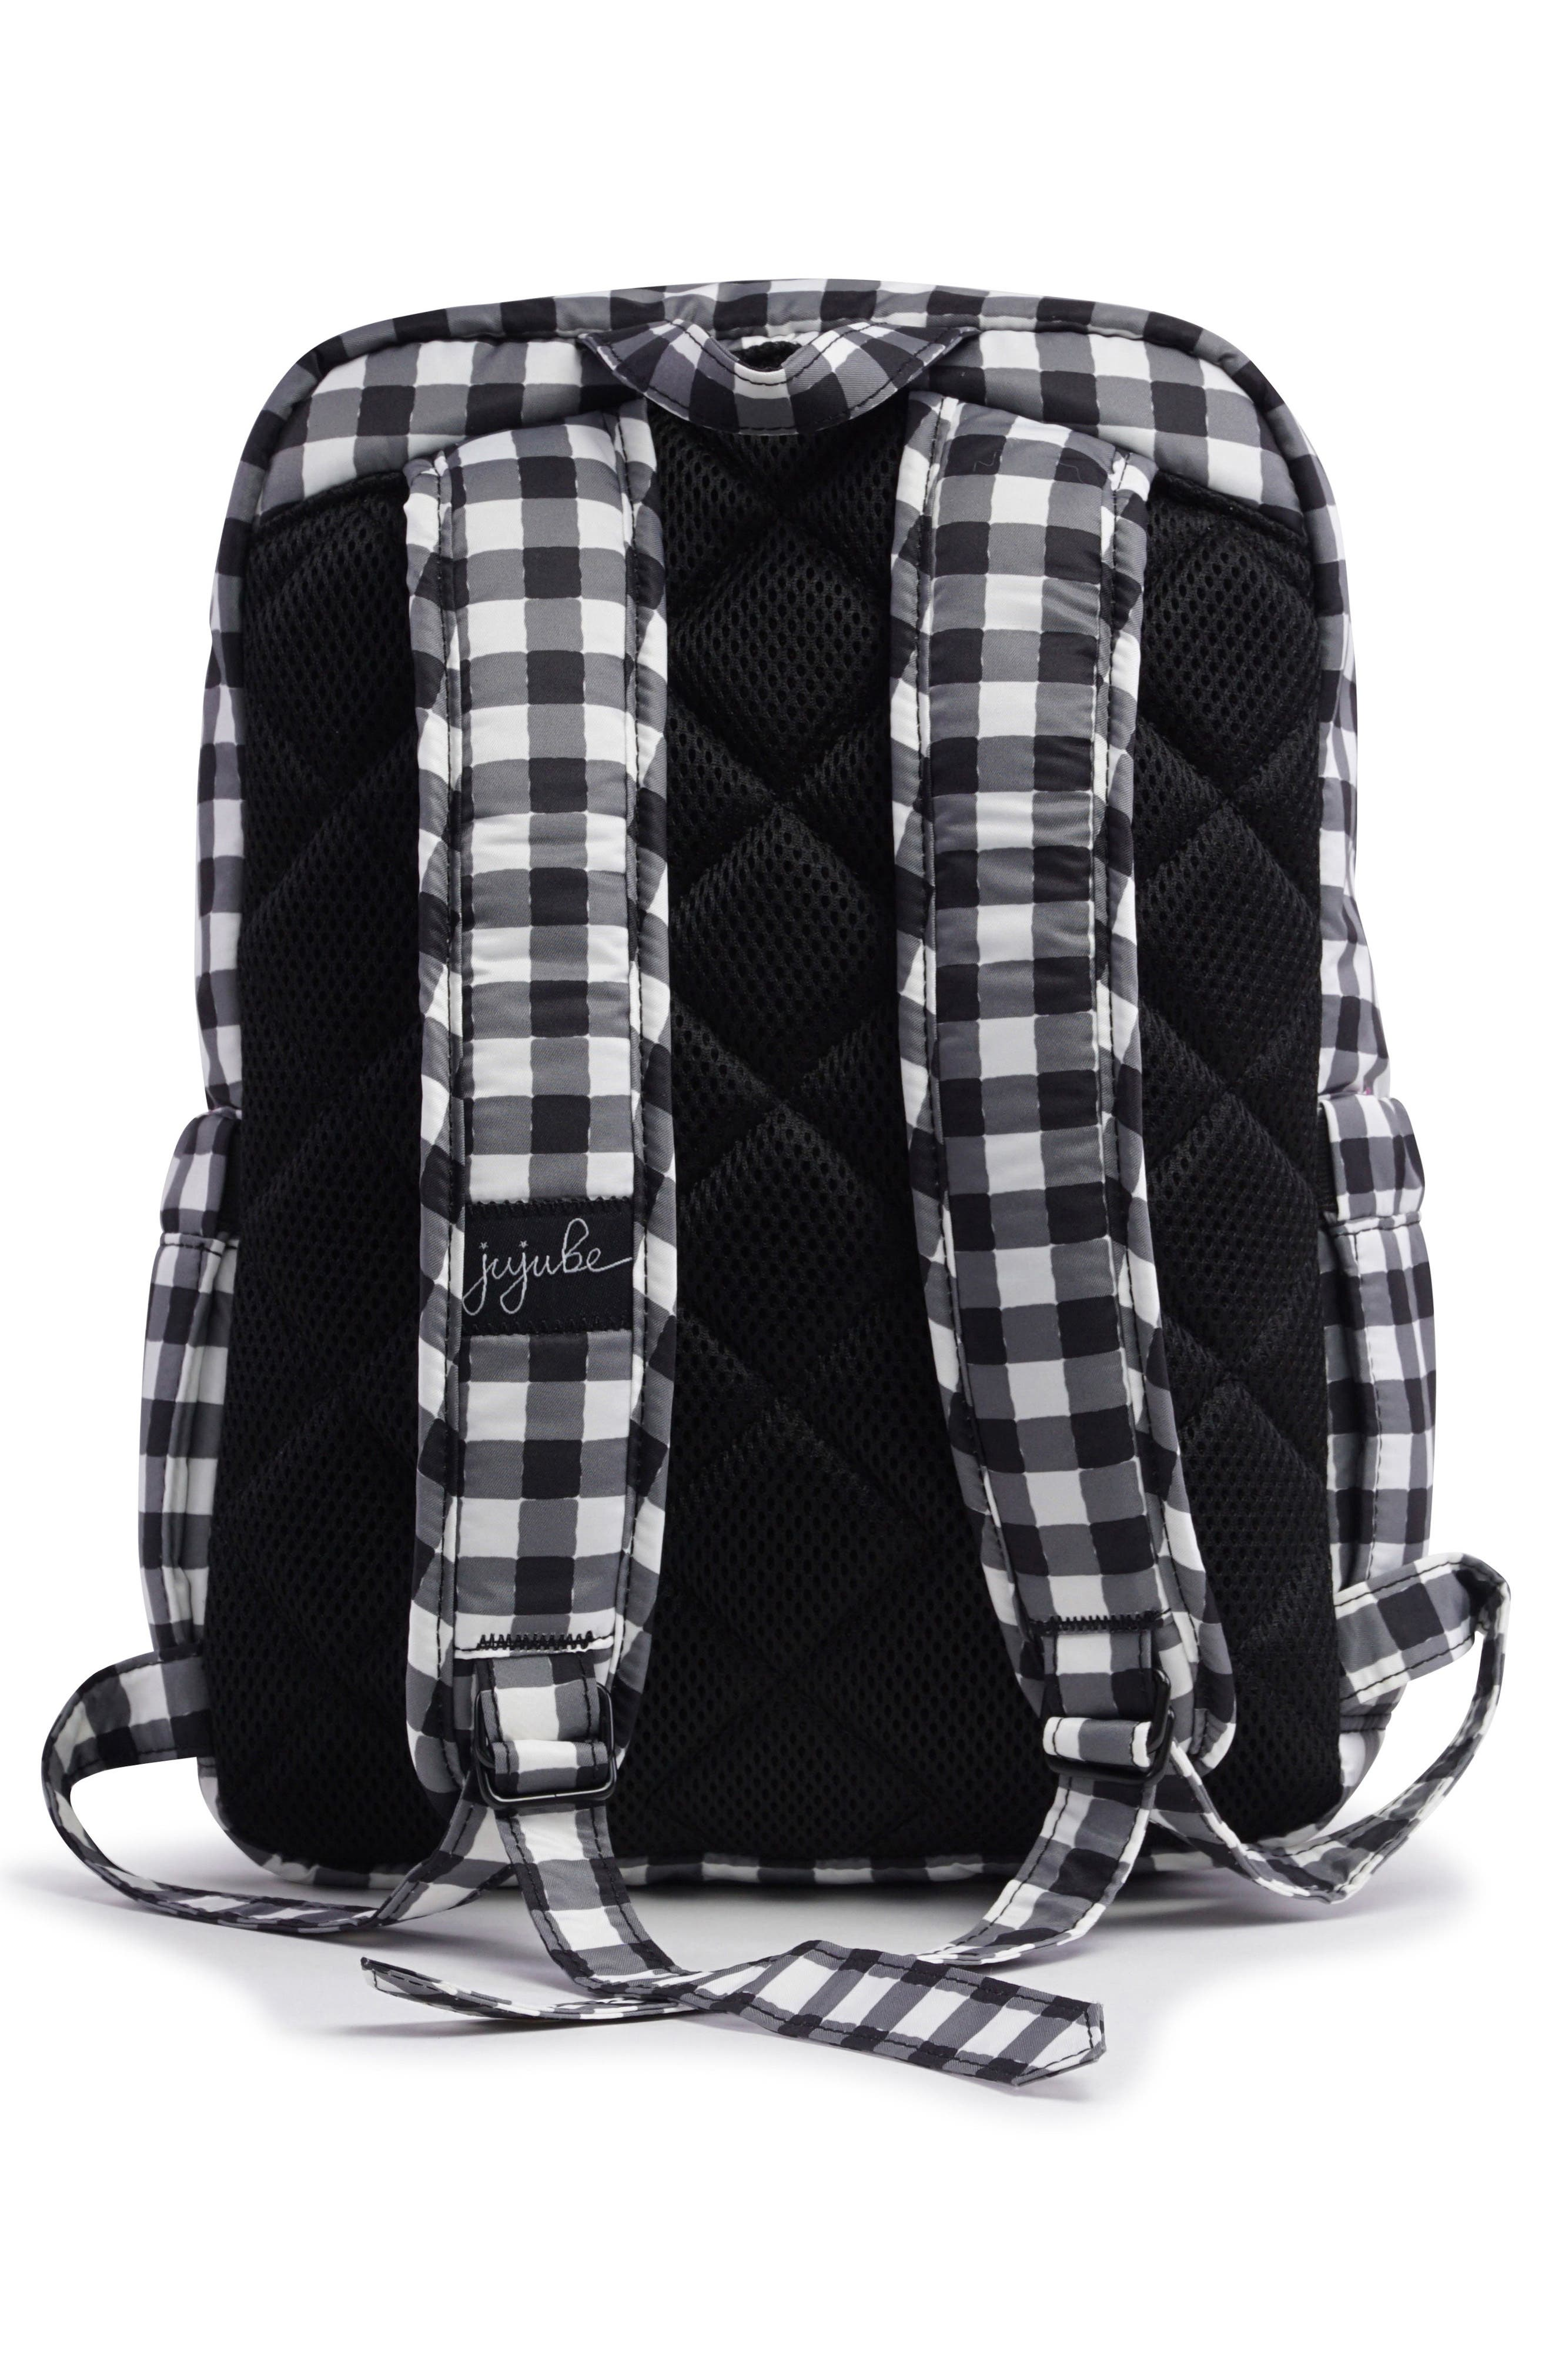 'Mini Be - Onyx Collection' Backpack,                             Alternate thumbnail 2, color,                             Gingham Style